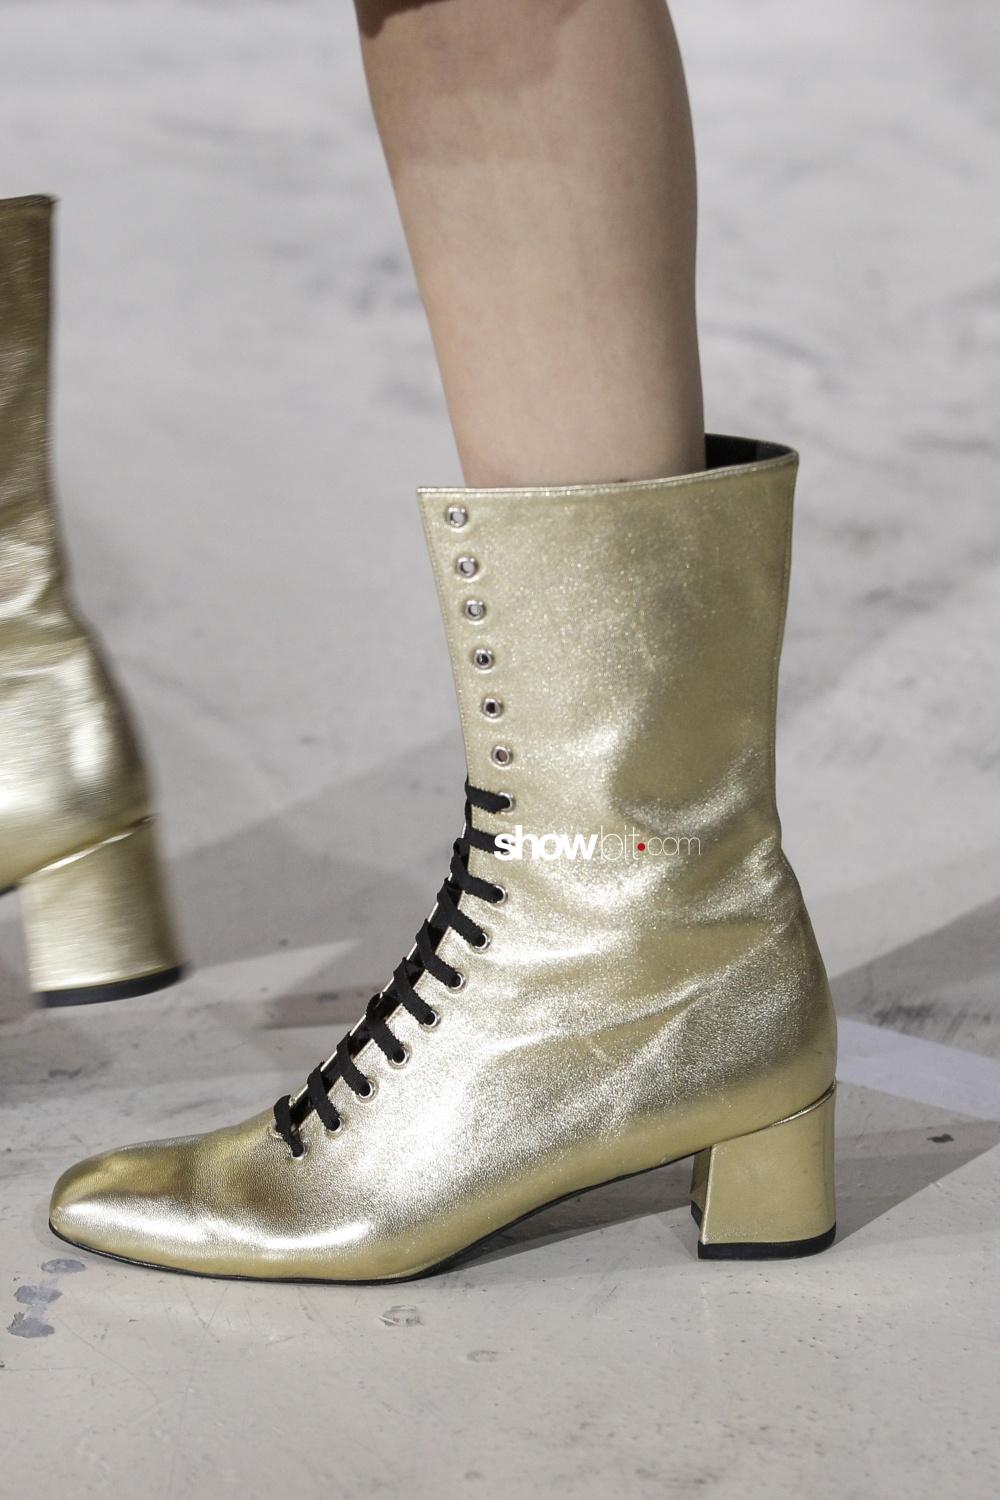 Jourden close-up shoes Woman Fall Winter 2018 Paris